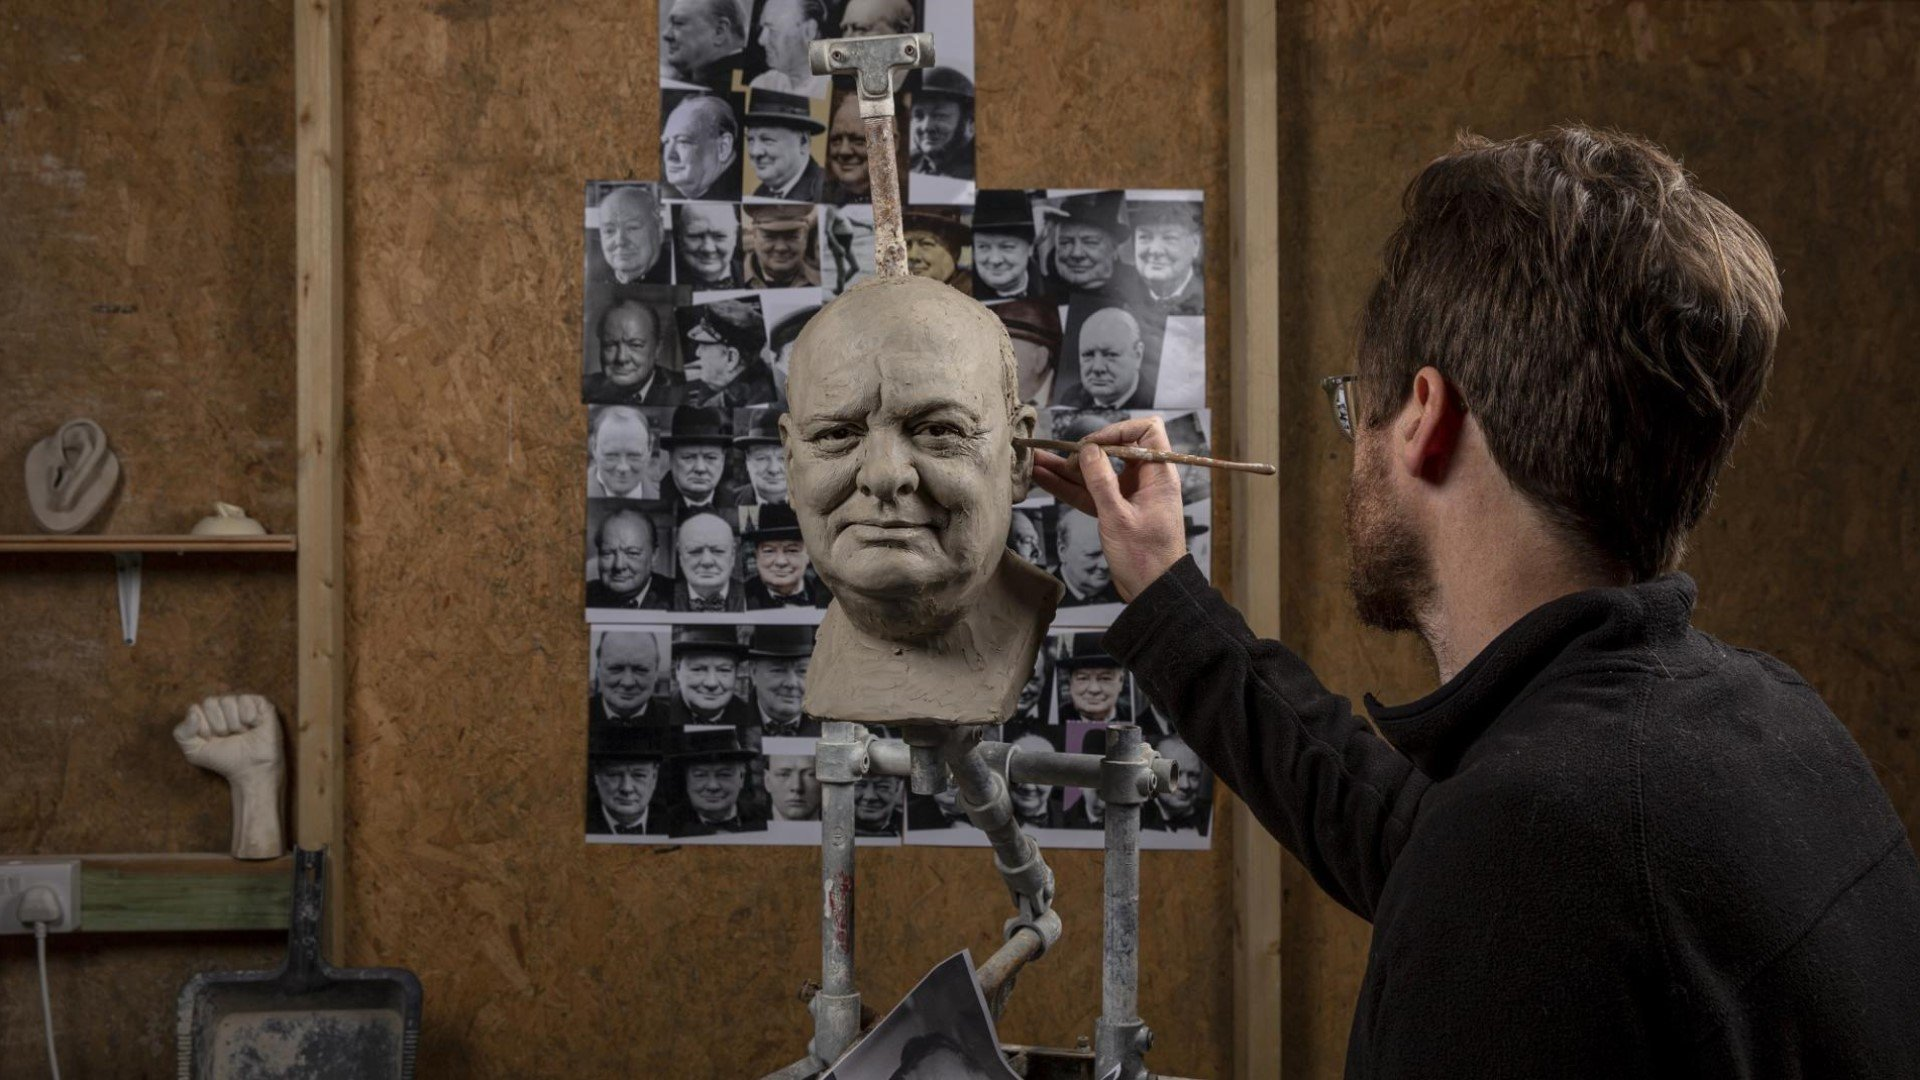 The Churchill Exhibition at Blenheim Palace